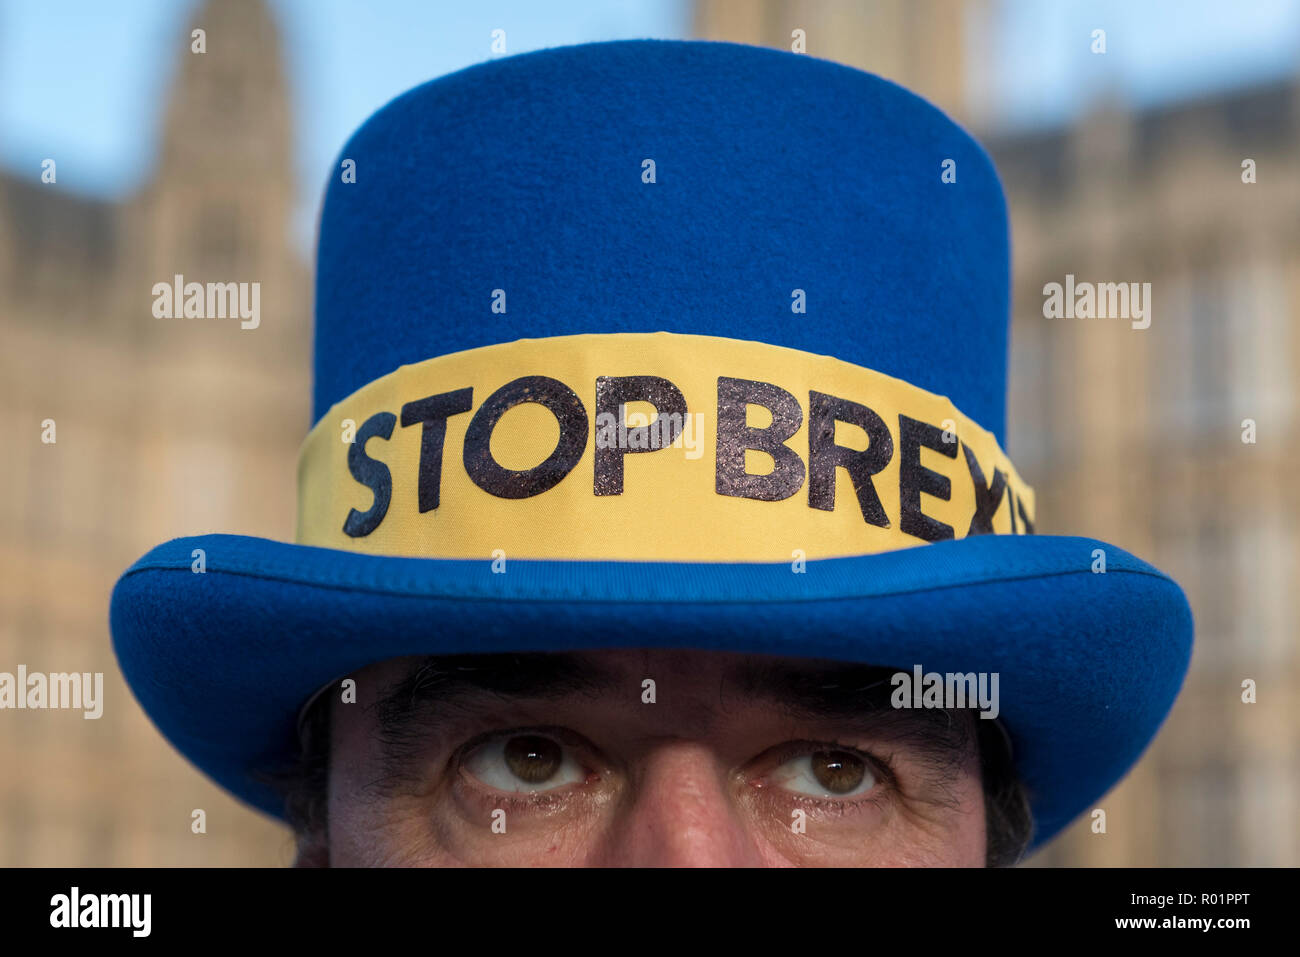 London, UK.  31 October 2018.  Steve Bray, leader of Stand of Defiance European Movement (SODEM), stands outside Parliament as the group continues their anti-Brexit campaign which began in September 2017. Credit: Stephen Chung / Alamy Live News Stock Photo